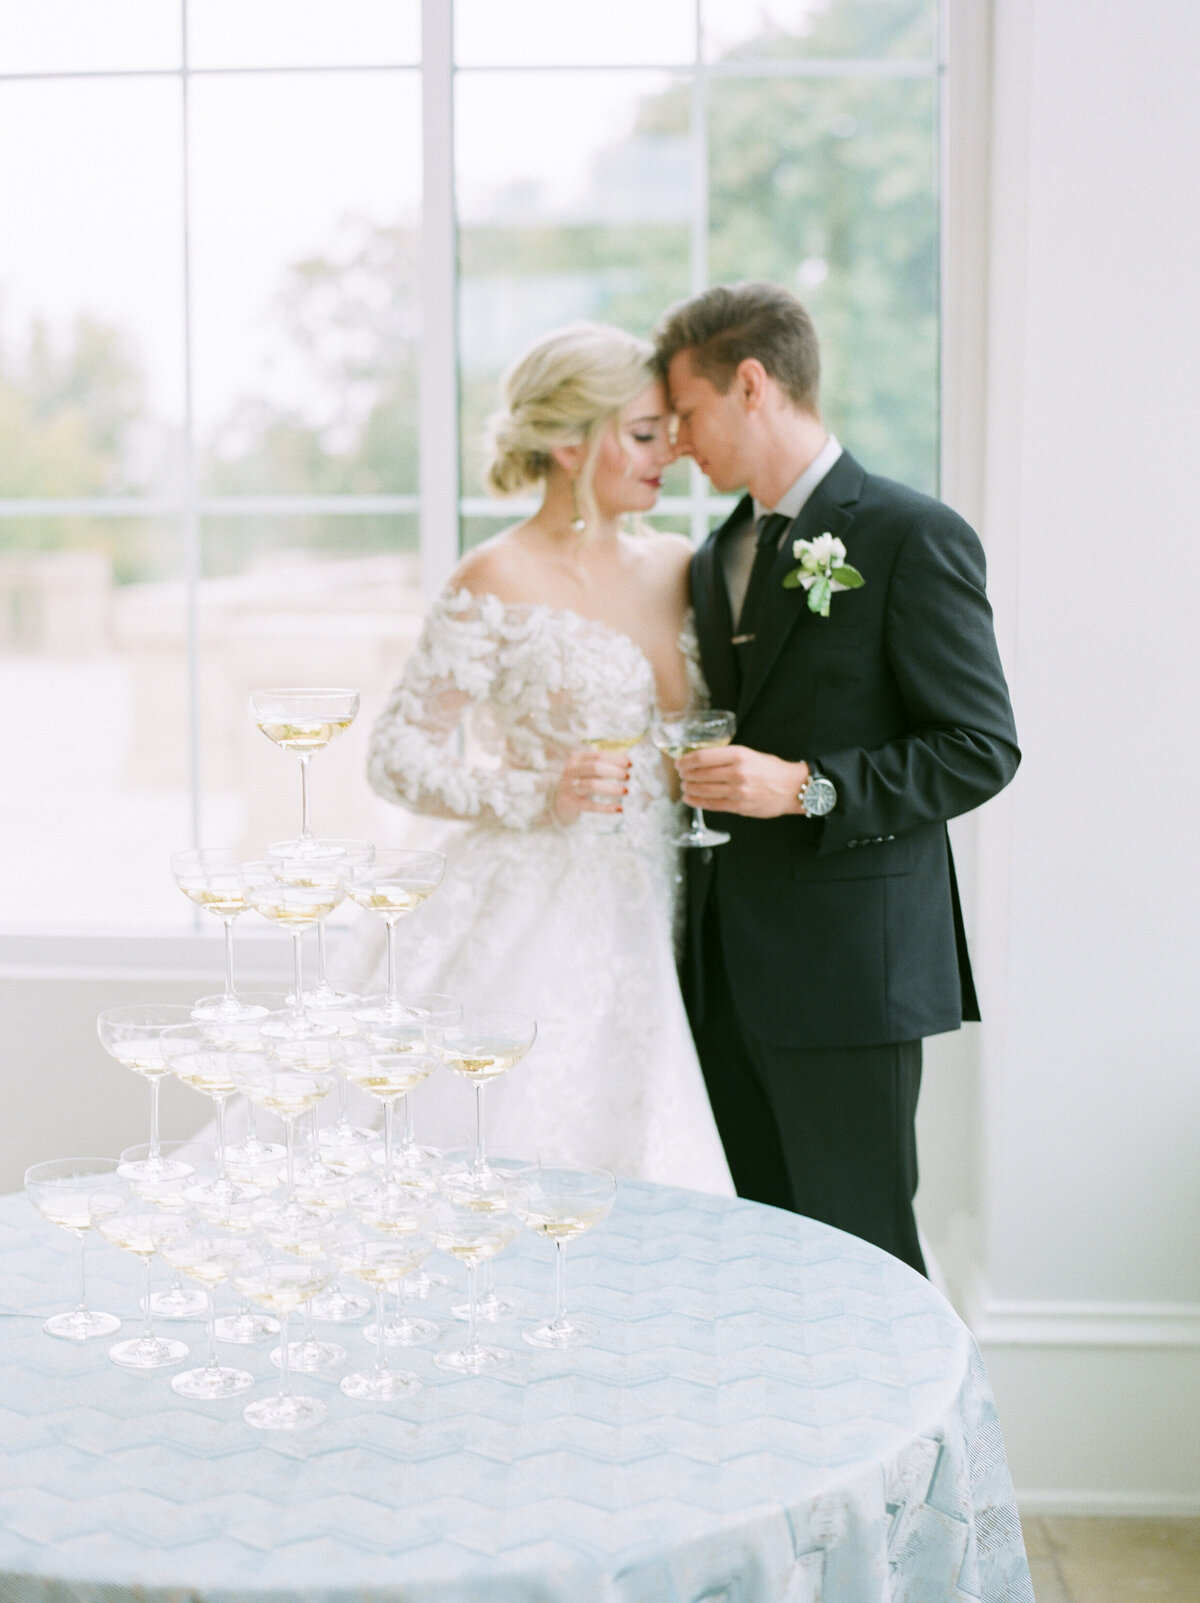 The Olana Nimbus Events Wedding Planning Champagne Tower Toast